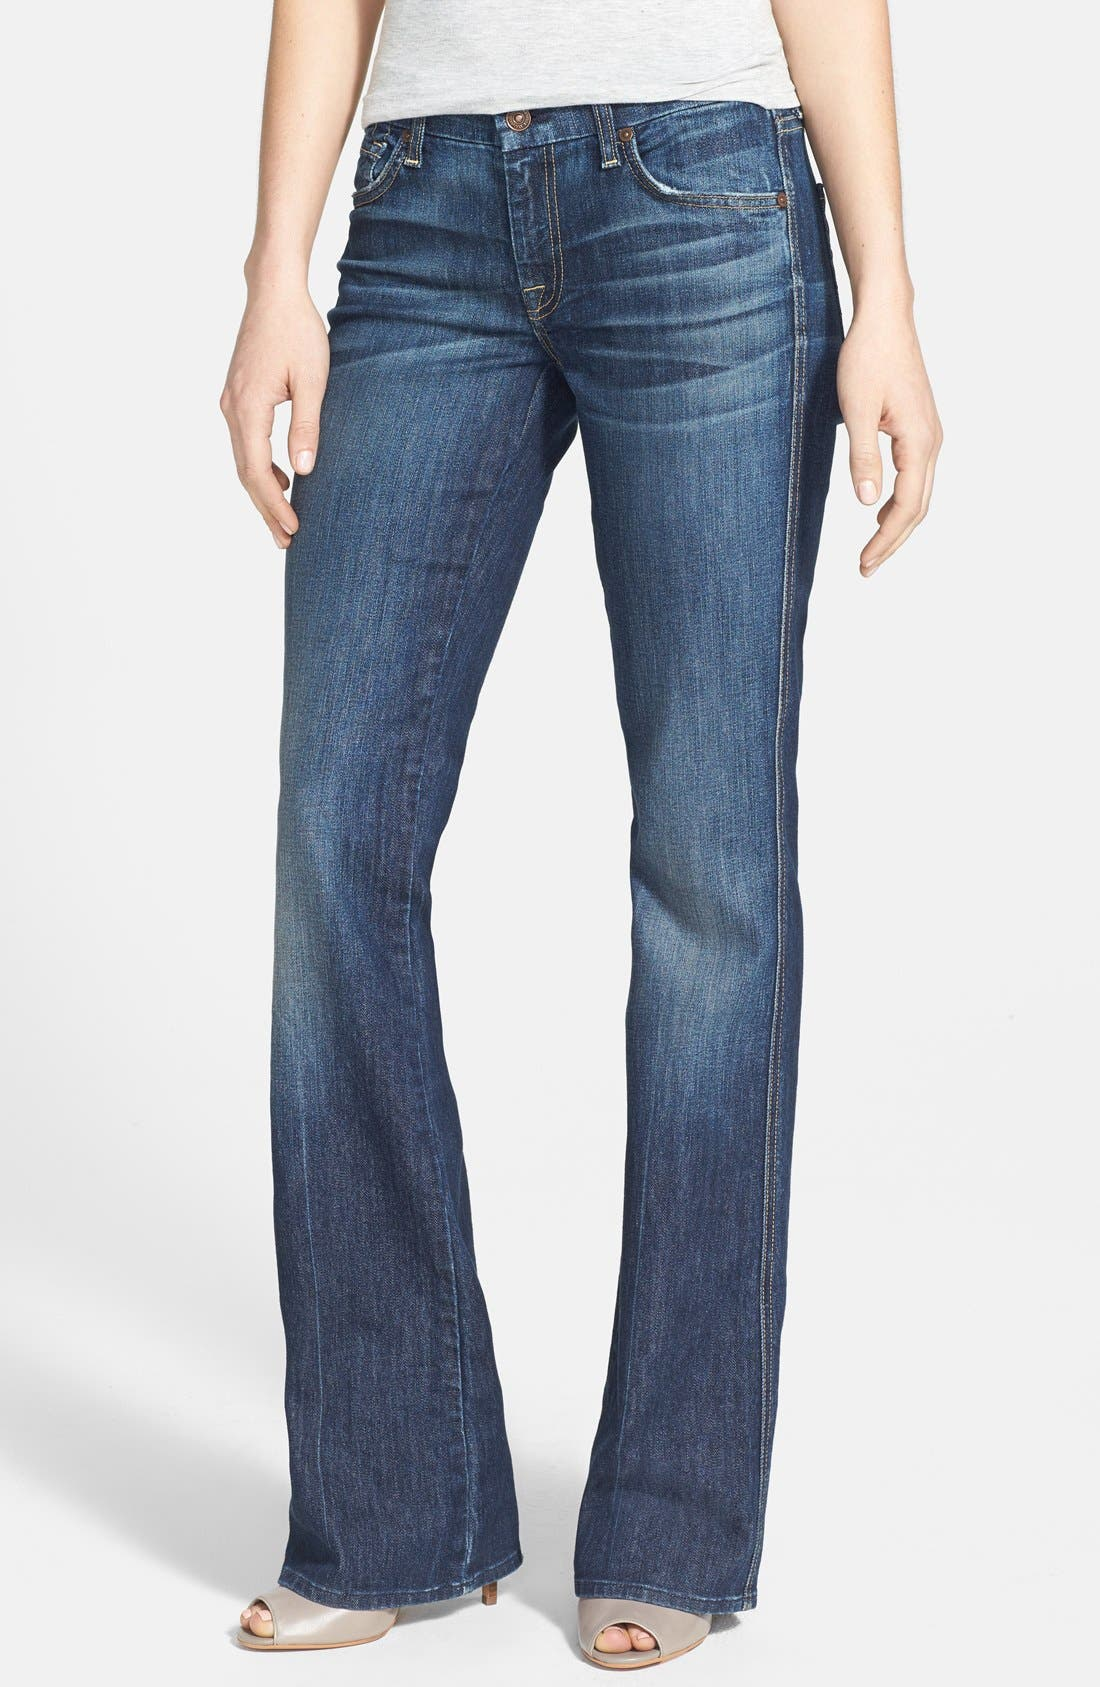 Alternate Image 1 Selected - 7 For All Mankind® Flare Jeans (Nouveau New York)